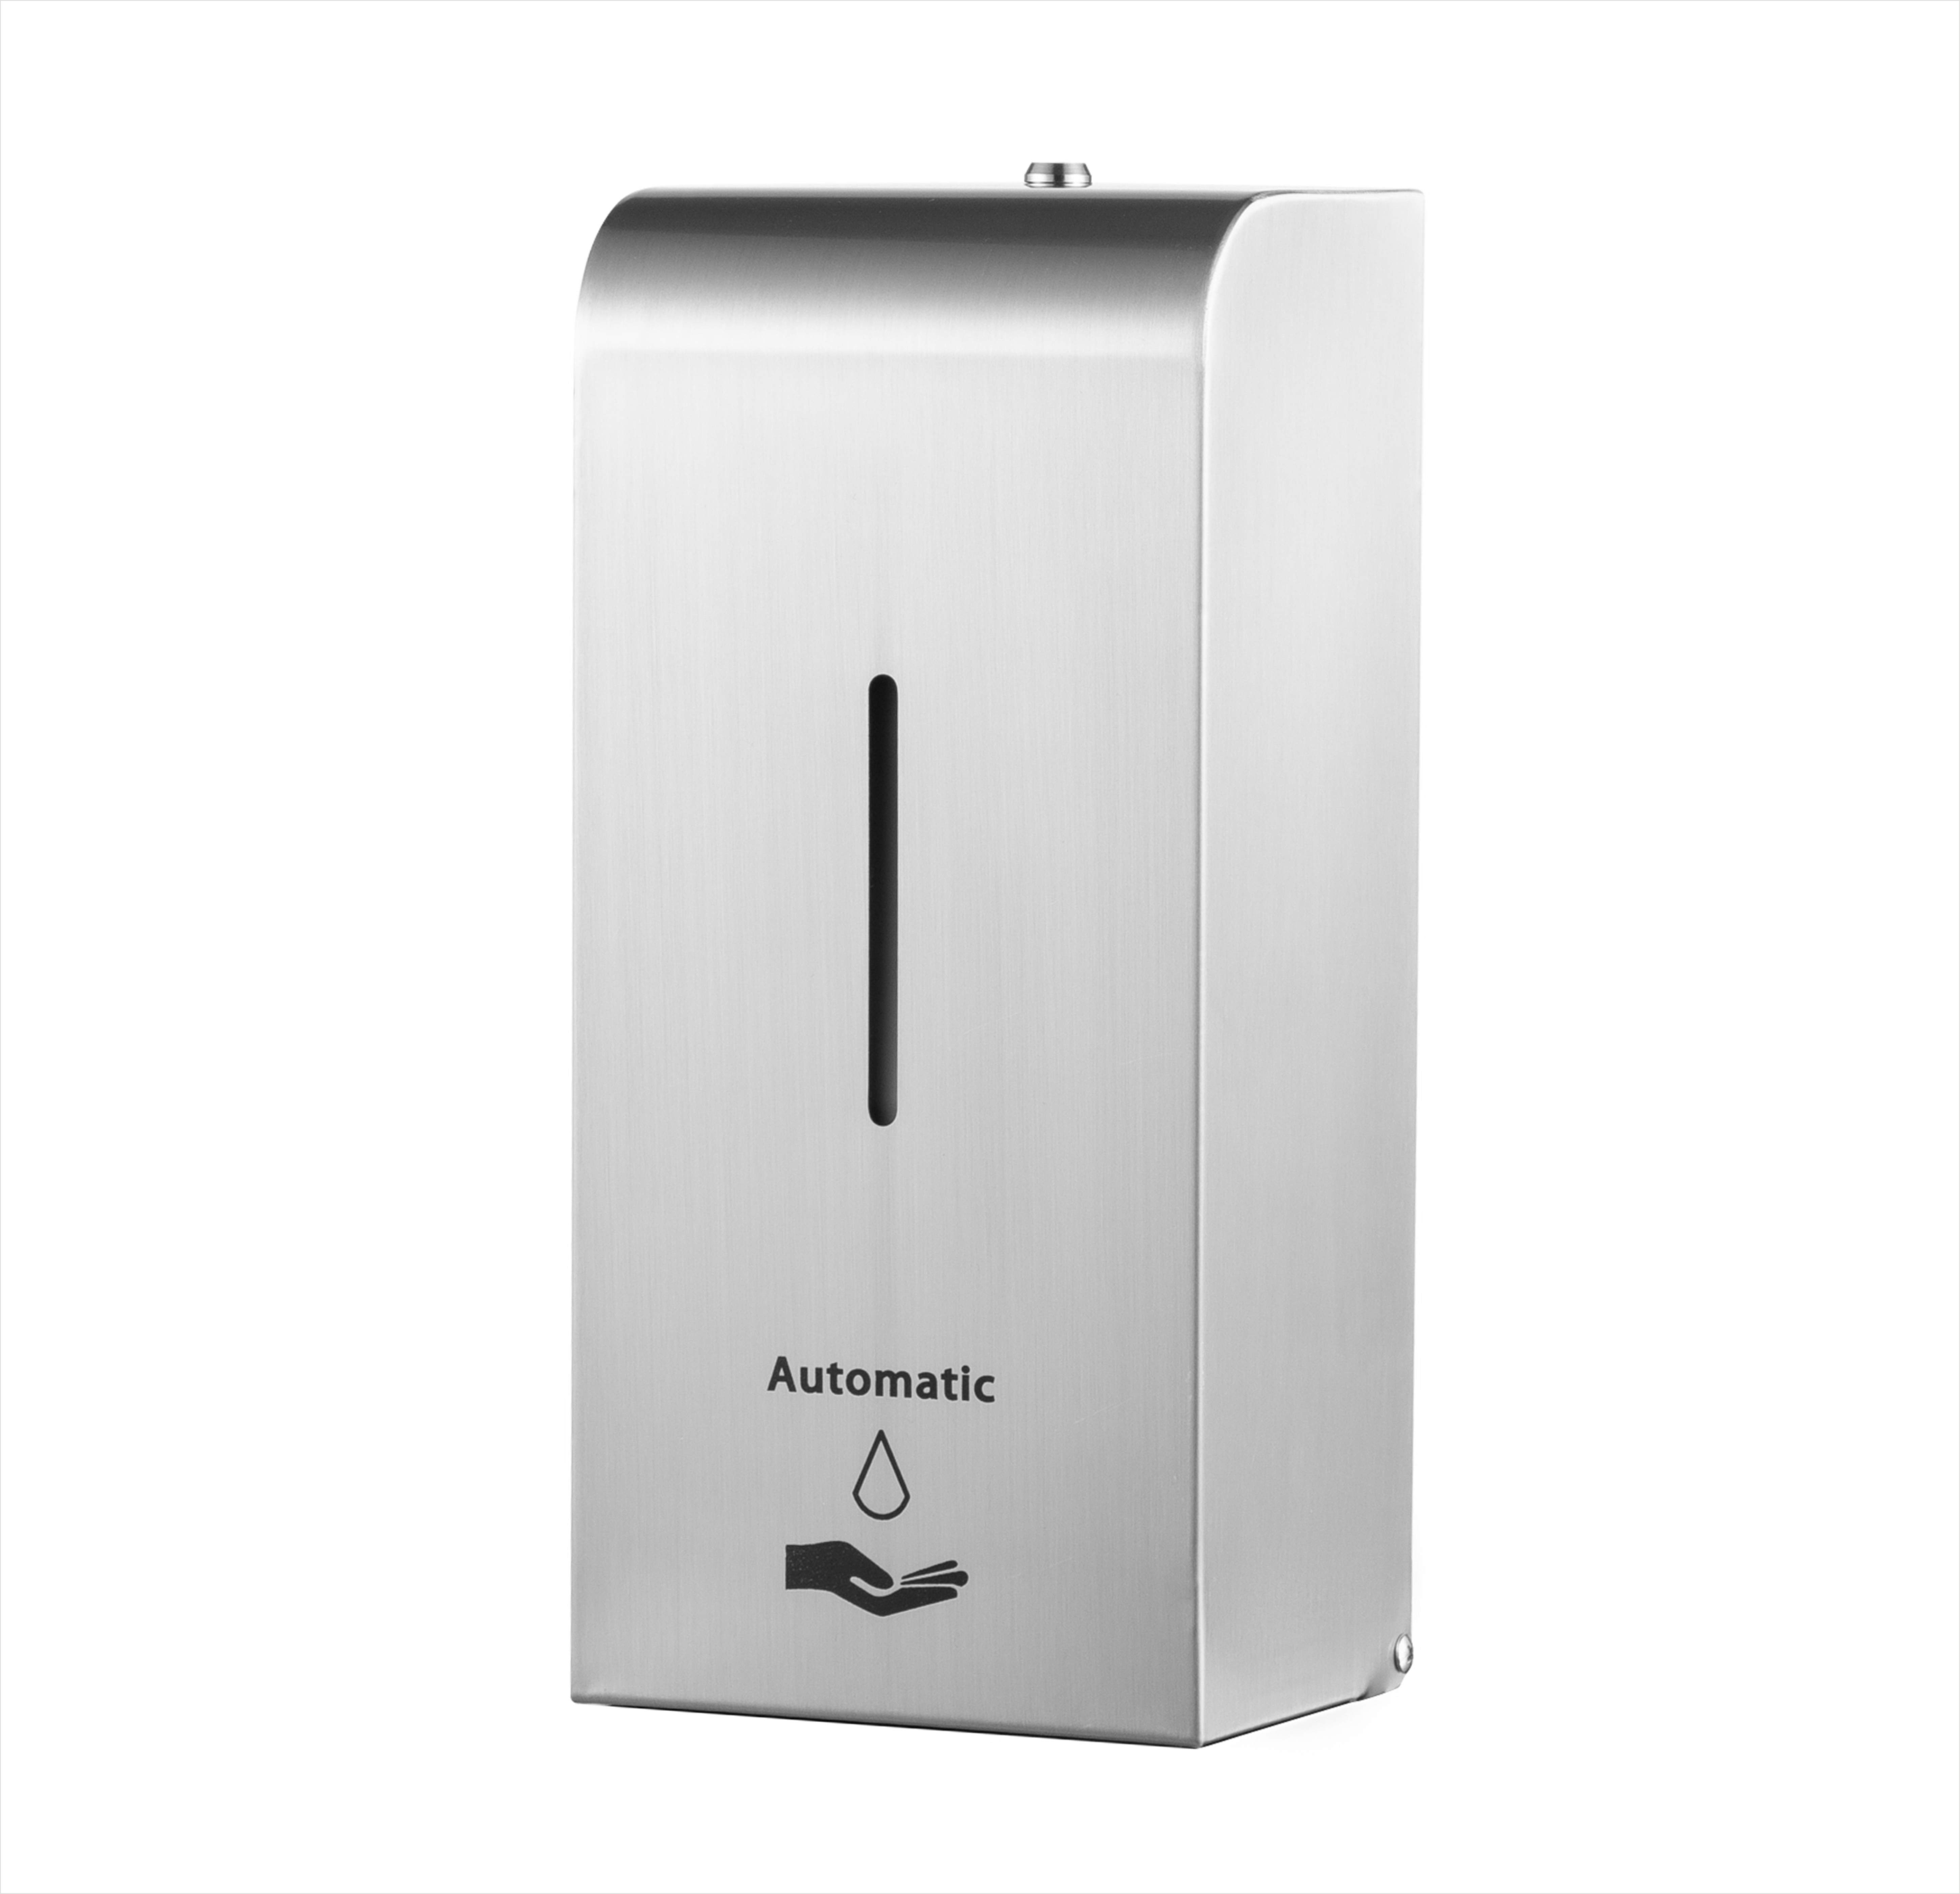 Auto Hand Sanitizing Station Indoor Floor Standing Hand Sanitizing Dispenser In Stock